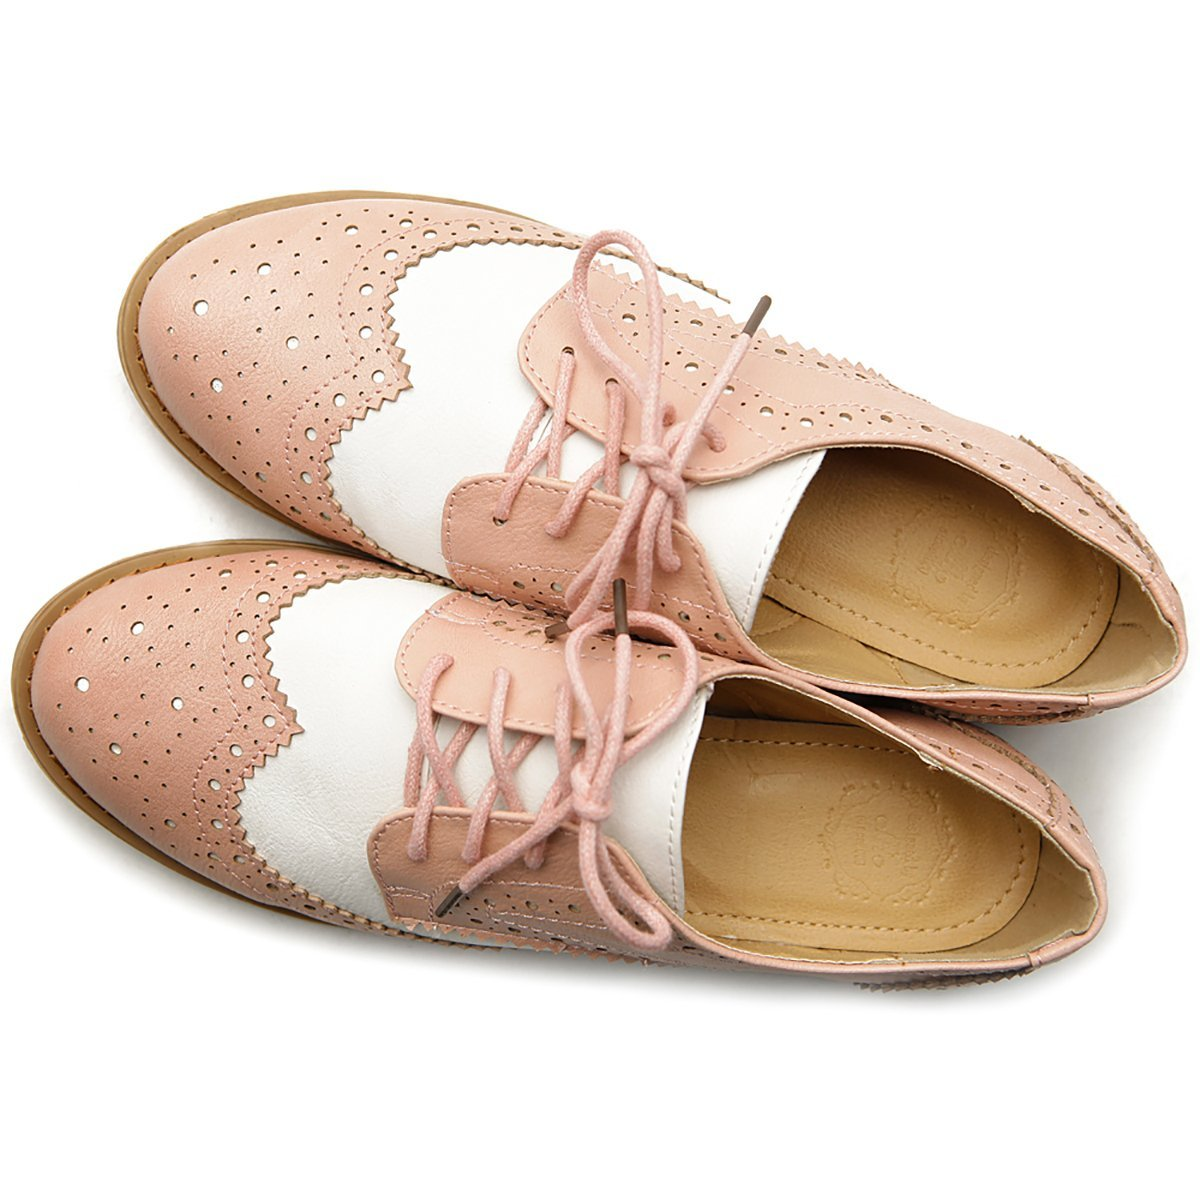 Vintage Style Shoes, Vintage Inspired Shoes Ollio Womens Flat Shoe Wingtip Lace up Two Tone Oxford $27.99 AT vintagedancer.com